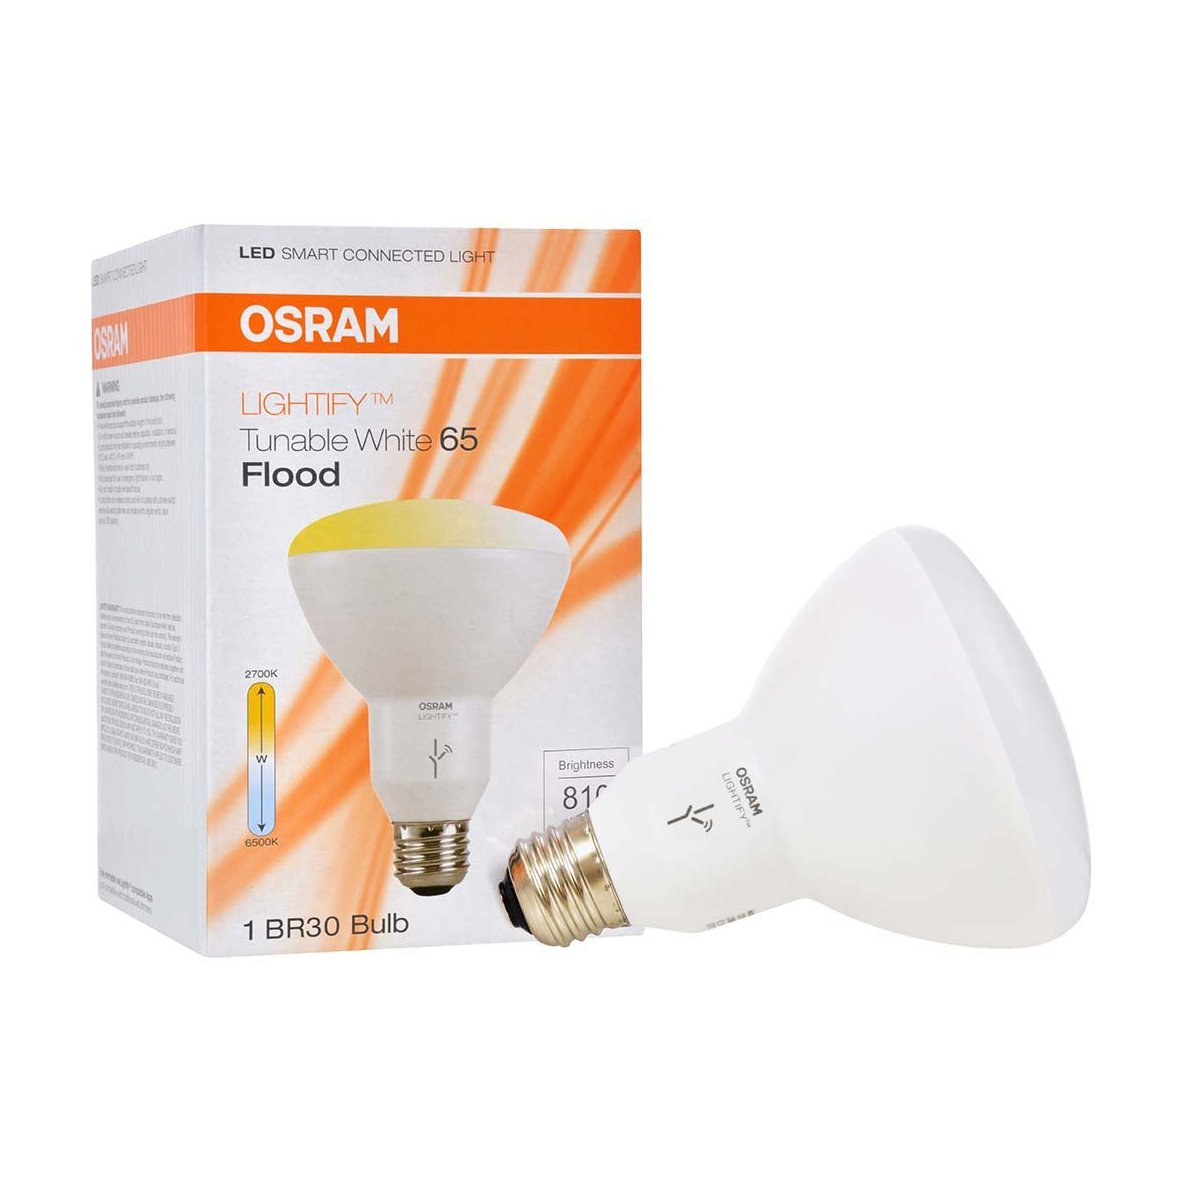 Sylvania Osram Lightify Smart Home 65W BR30 Tunable Warm White LED Flood Light